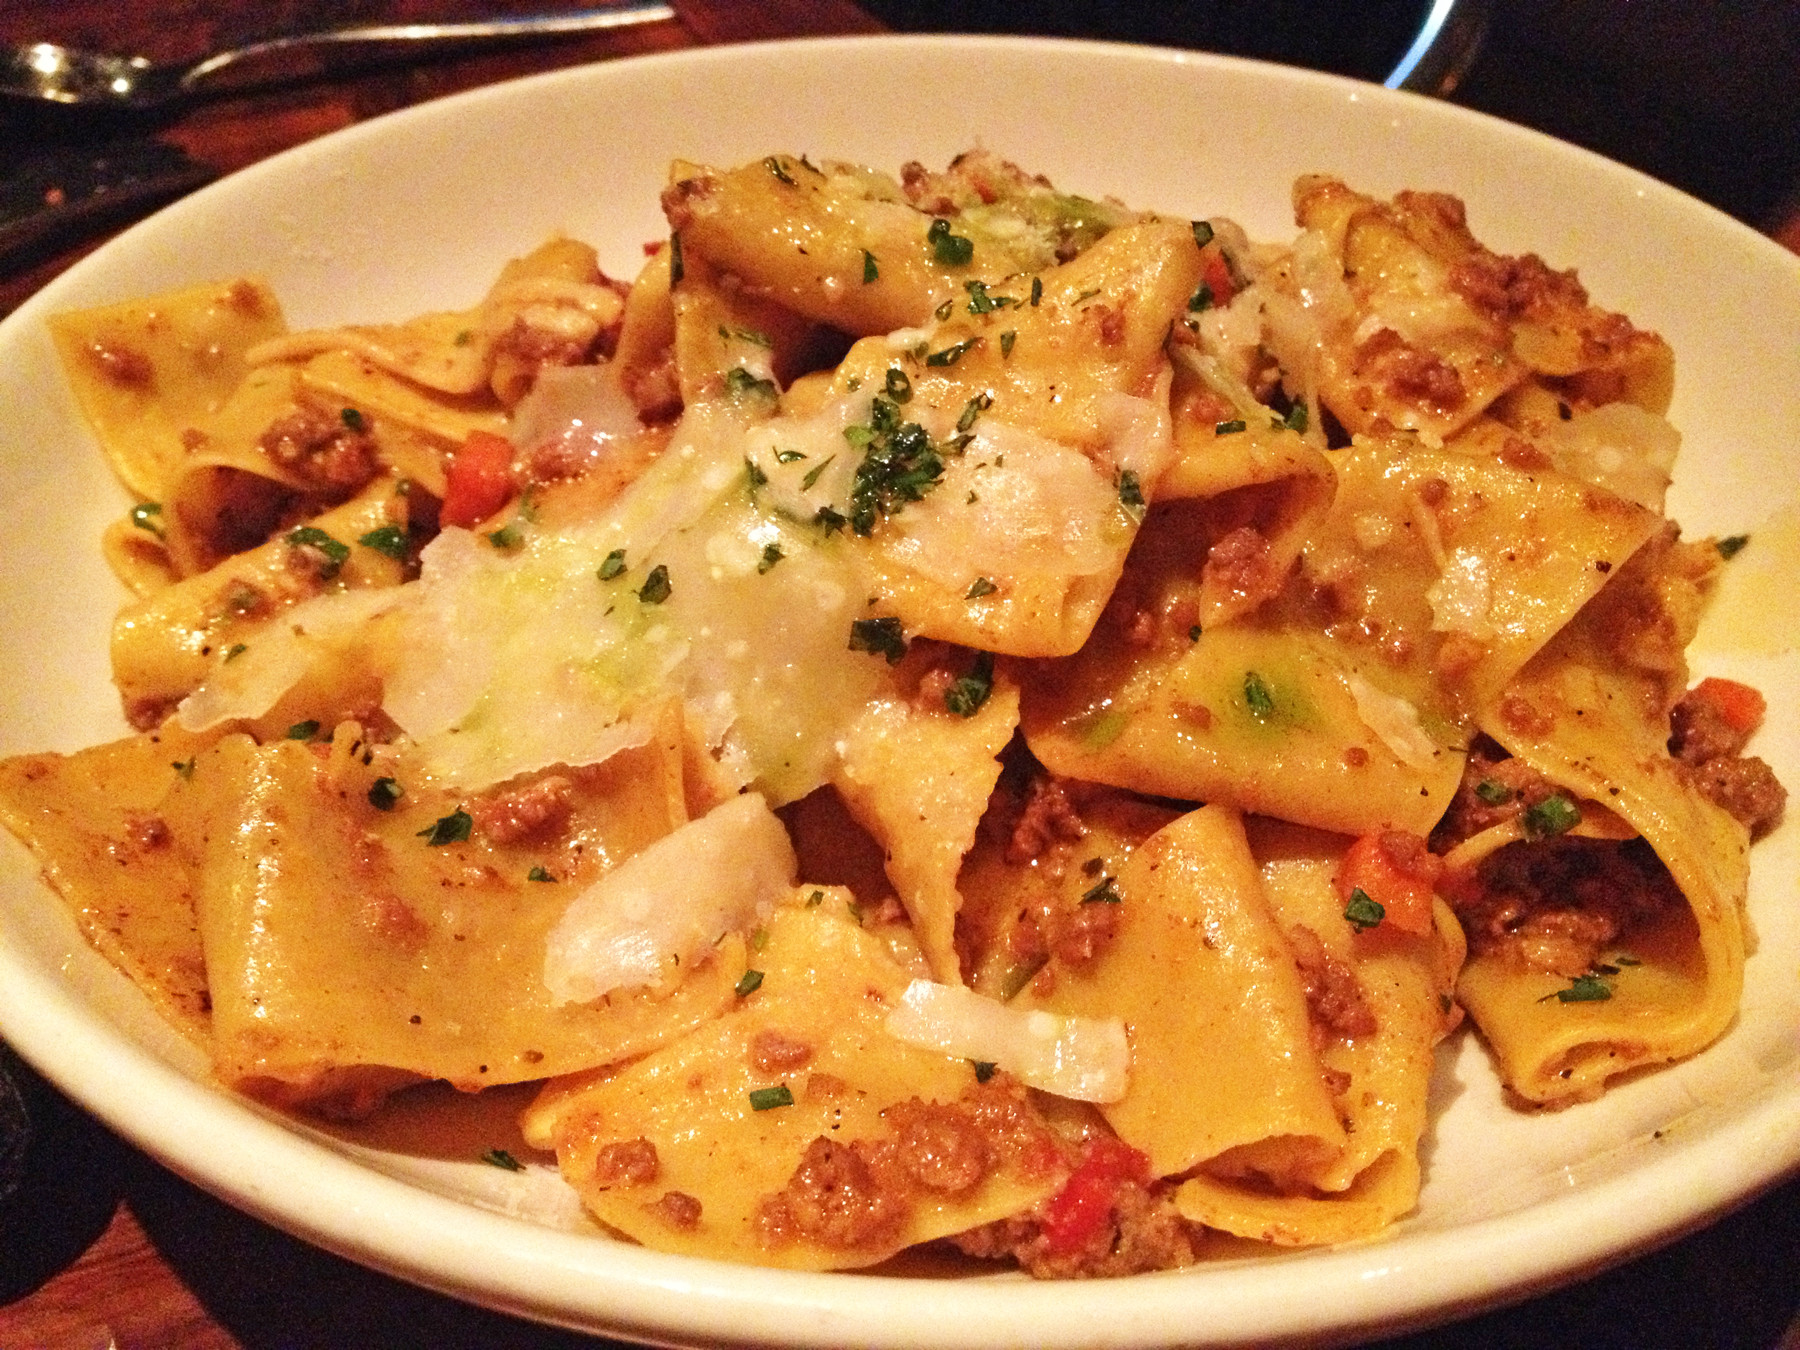 House-made pappardelle pasta with Bolognese sauce and parmigiano reggiano cheese